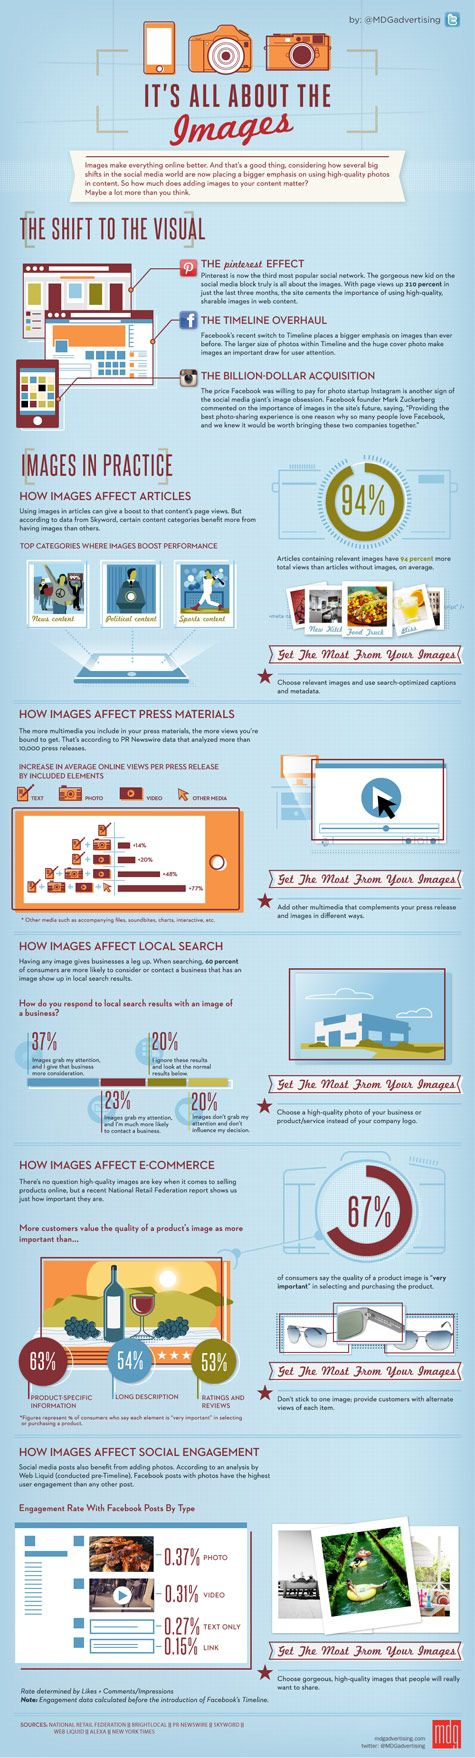 How visual marketing is dominating the digital marketing landscape.  www.socialmediabusinessacademy.com   Digital Marketing Infographic